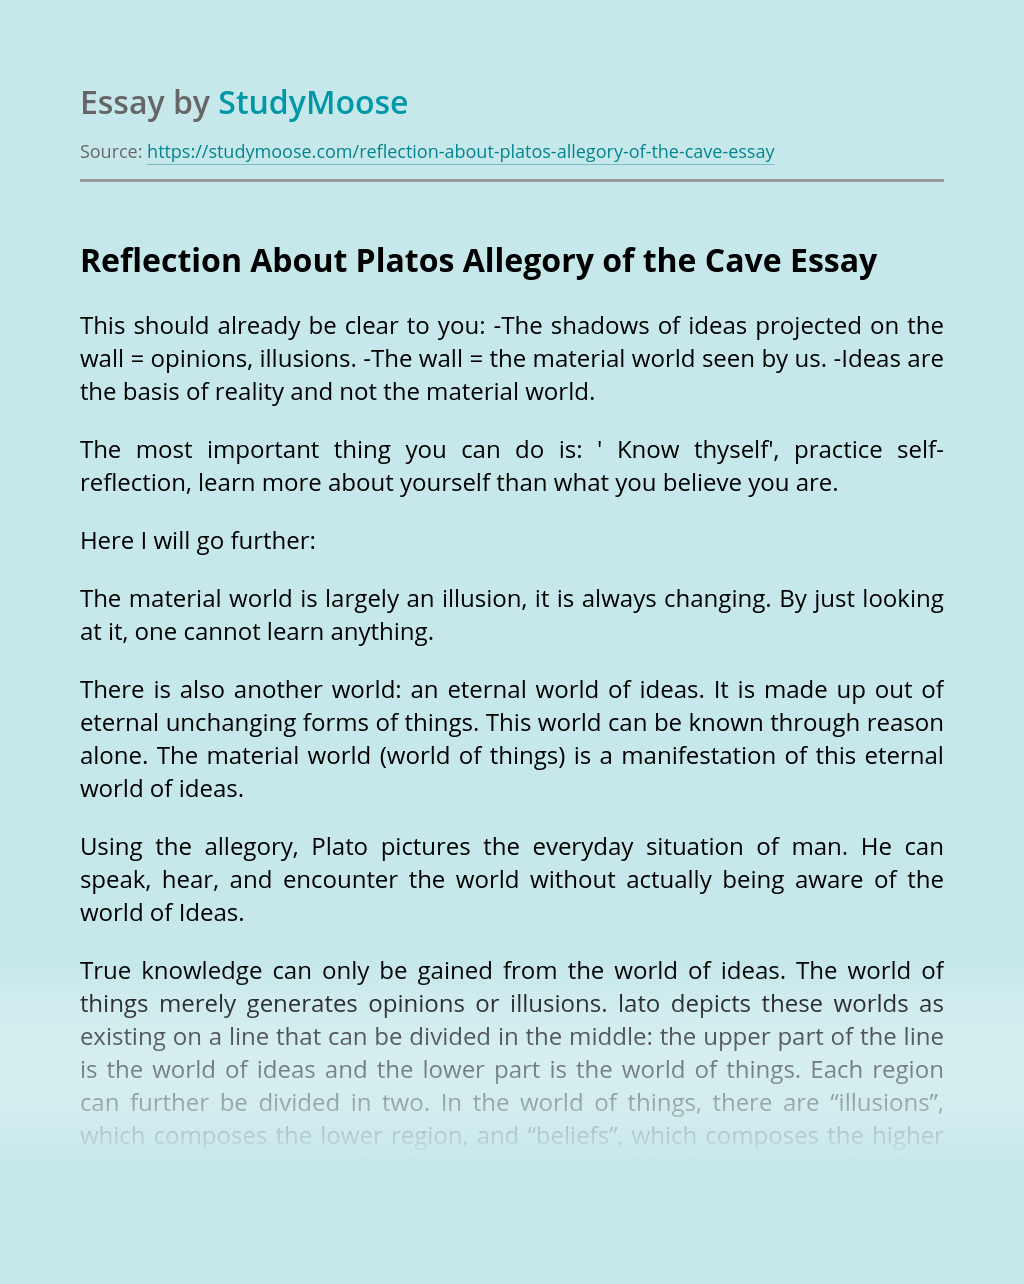 Reflection About Platos Allegory of the Cave